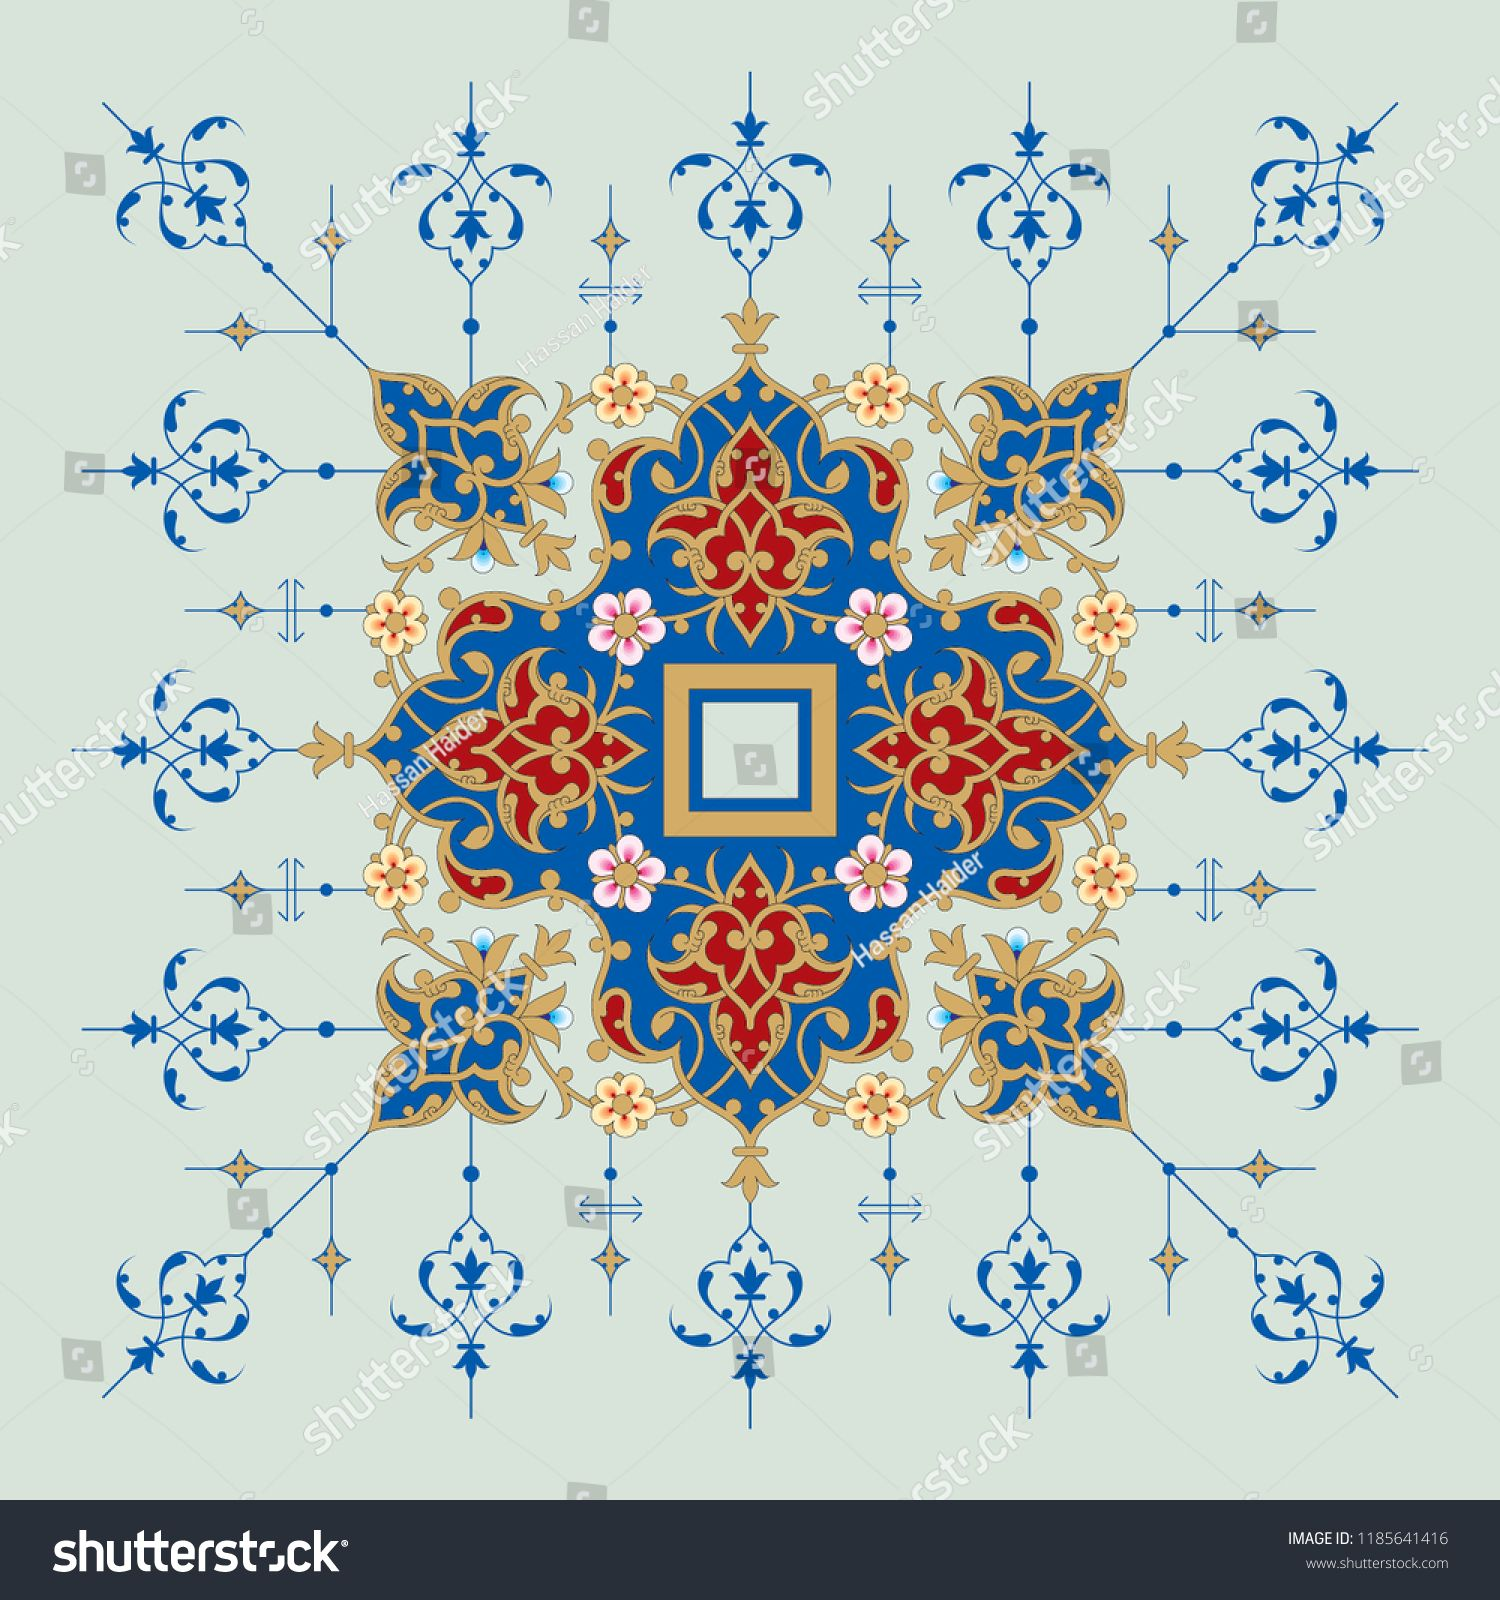 Arabic Floral Frame Traditional Islamic Design Mosque Decoration Element Elegance Background With Text Input Area In A Center Islamic Design Design Artwork